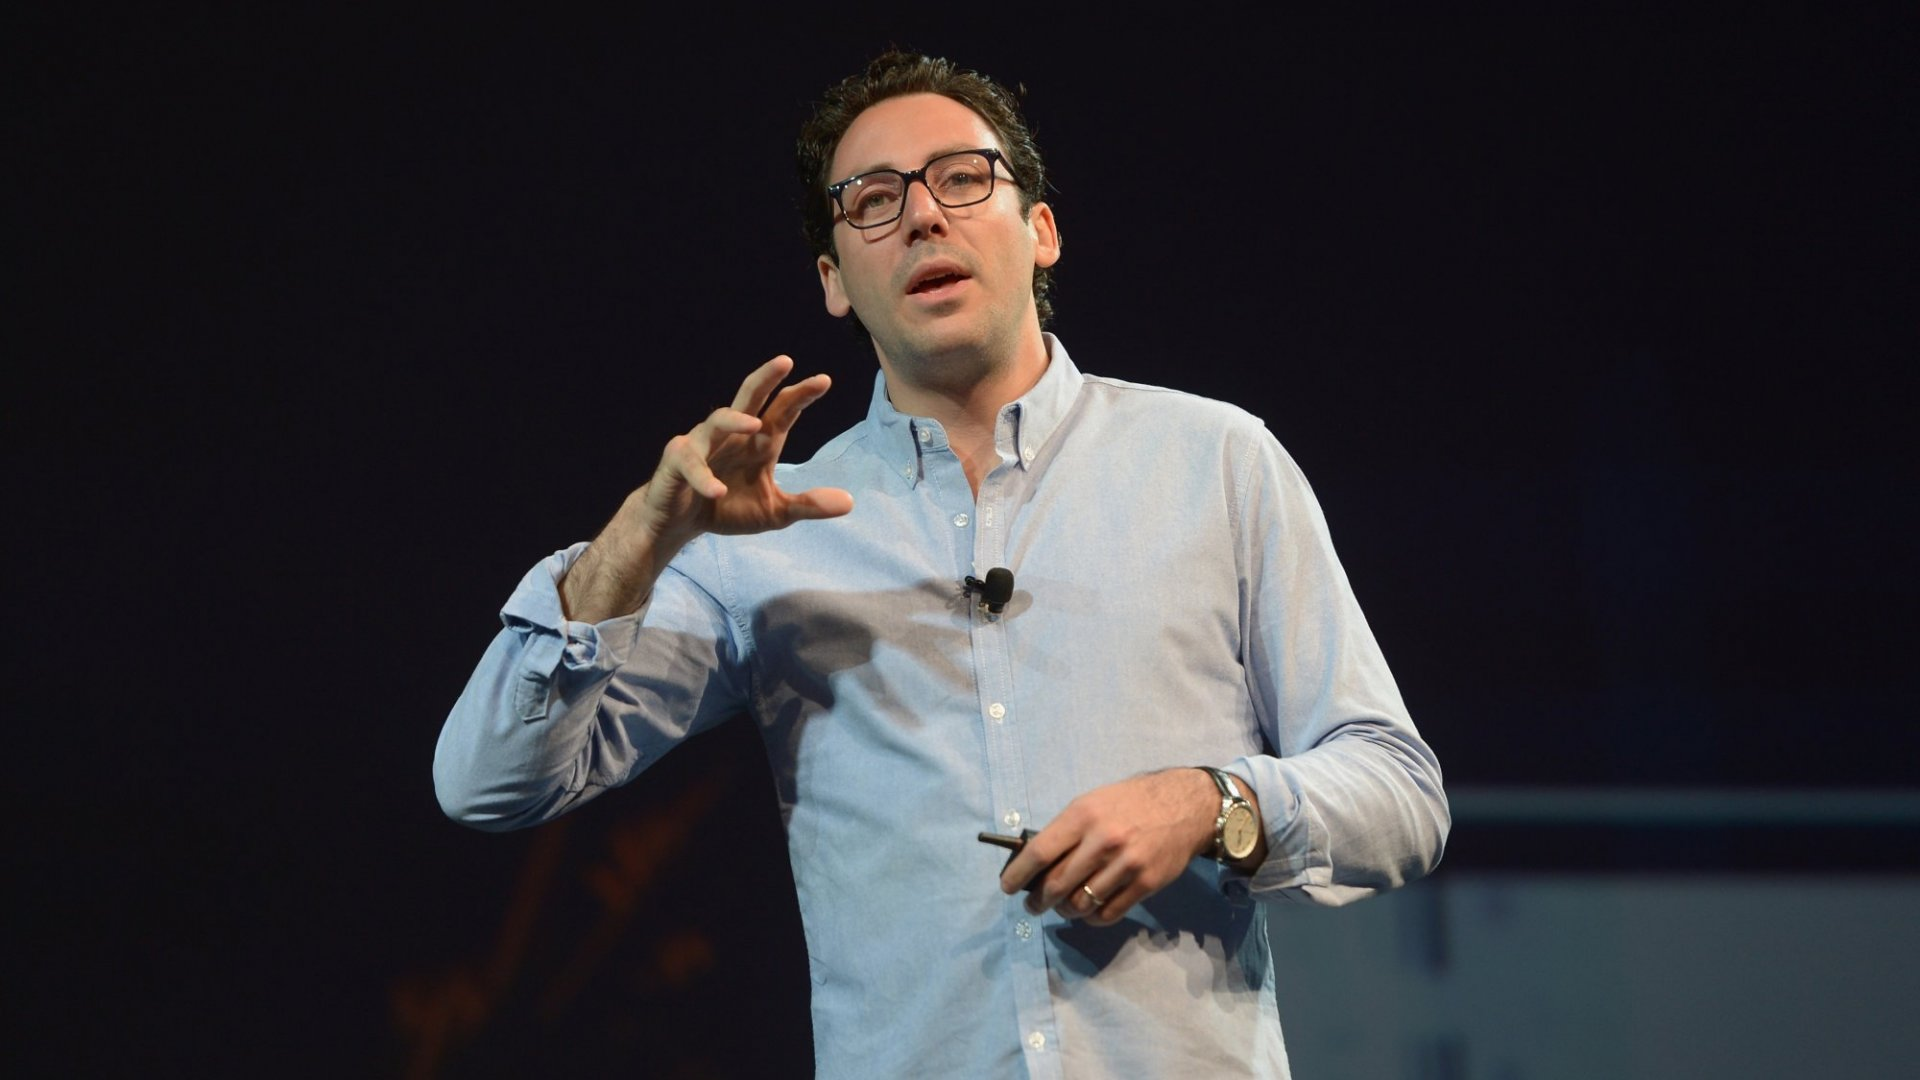 Warby Parker Founder: Why Everyone Should Know Everyone Else's Business